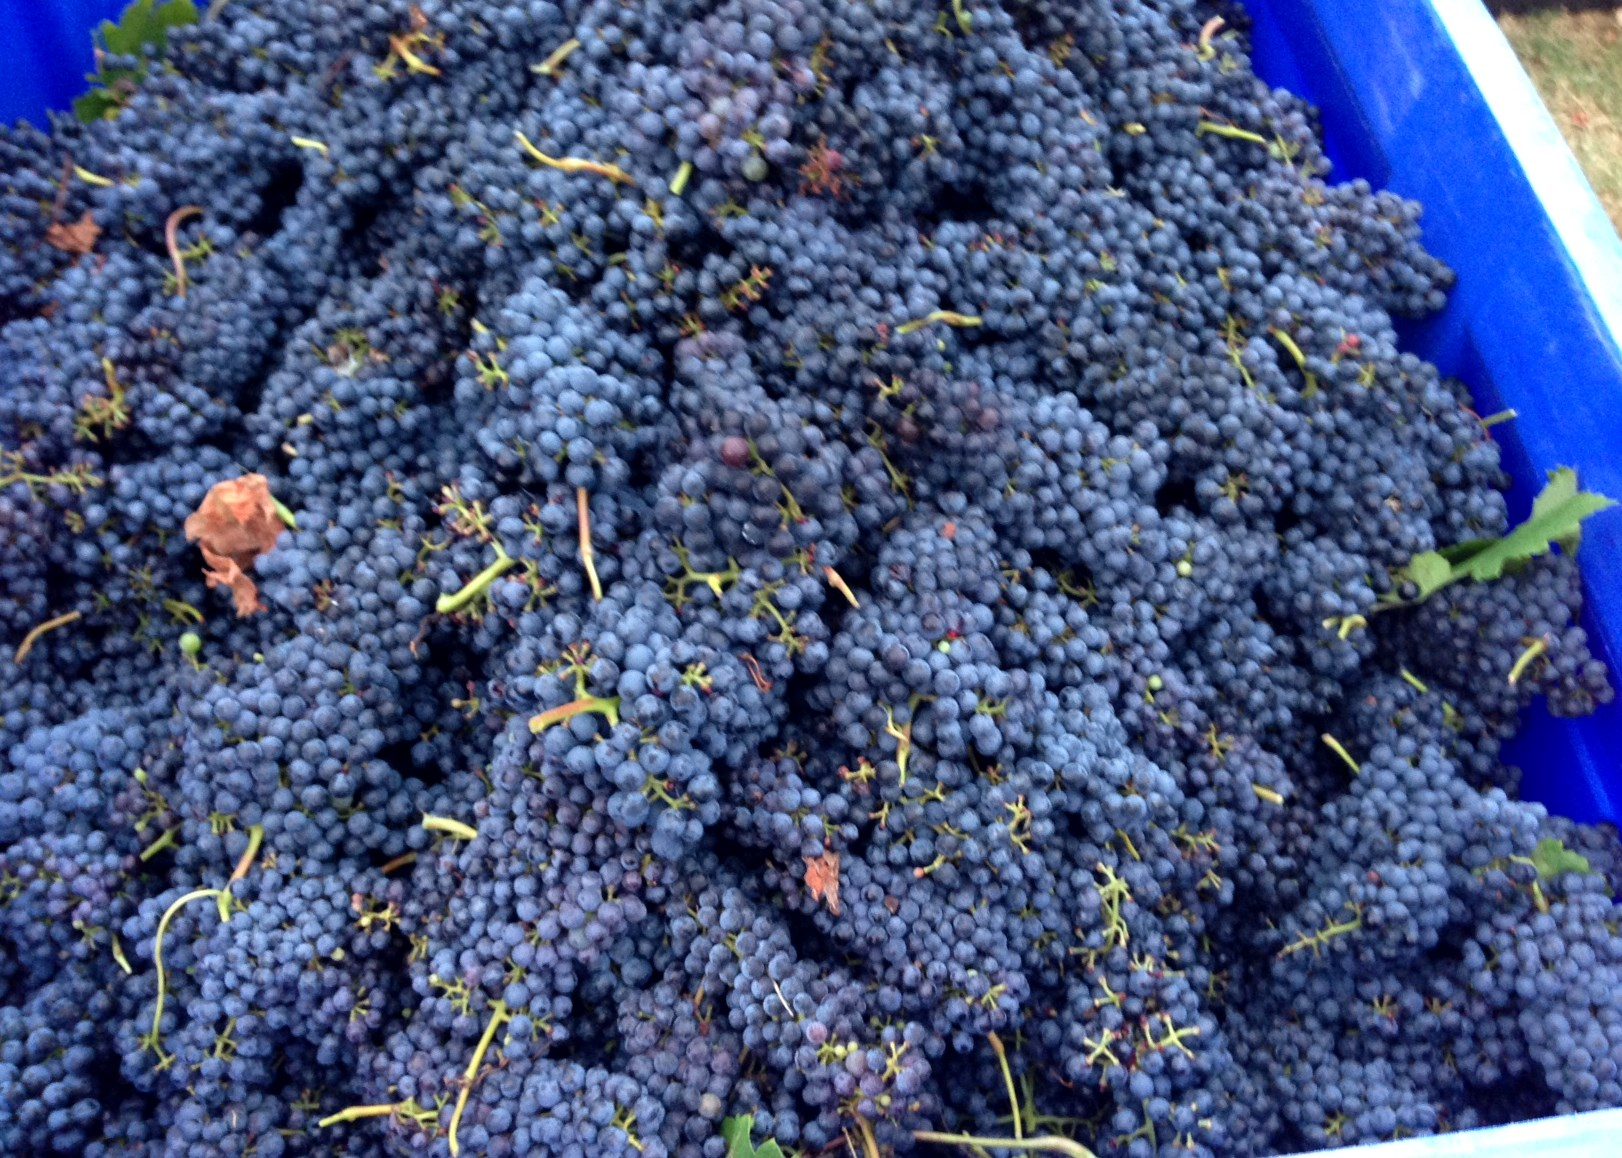 Grapes in Harvest Bin